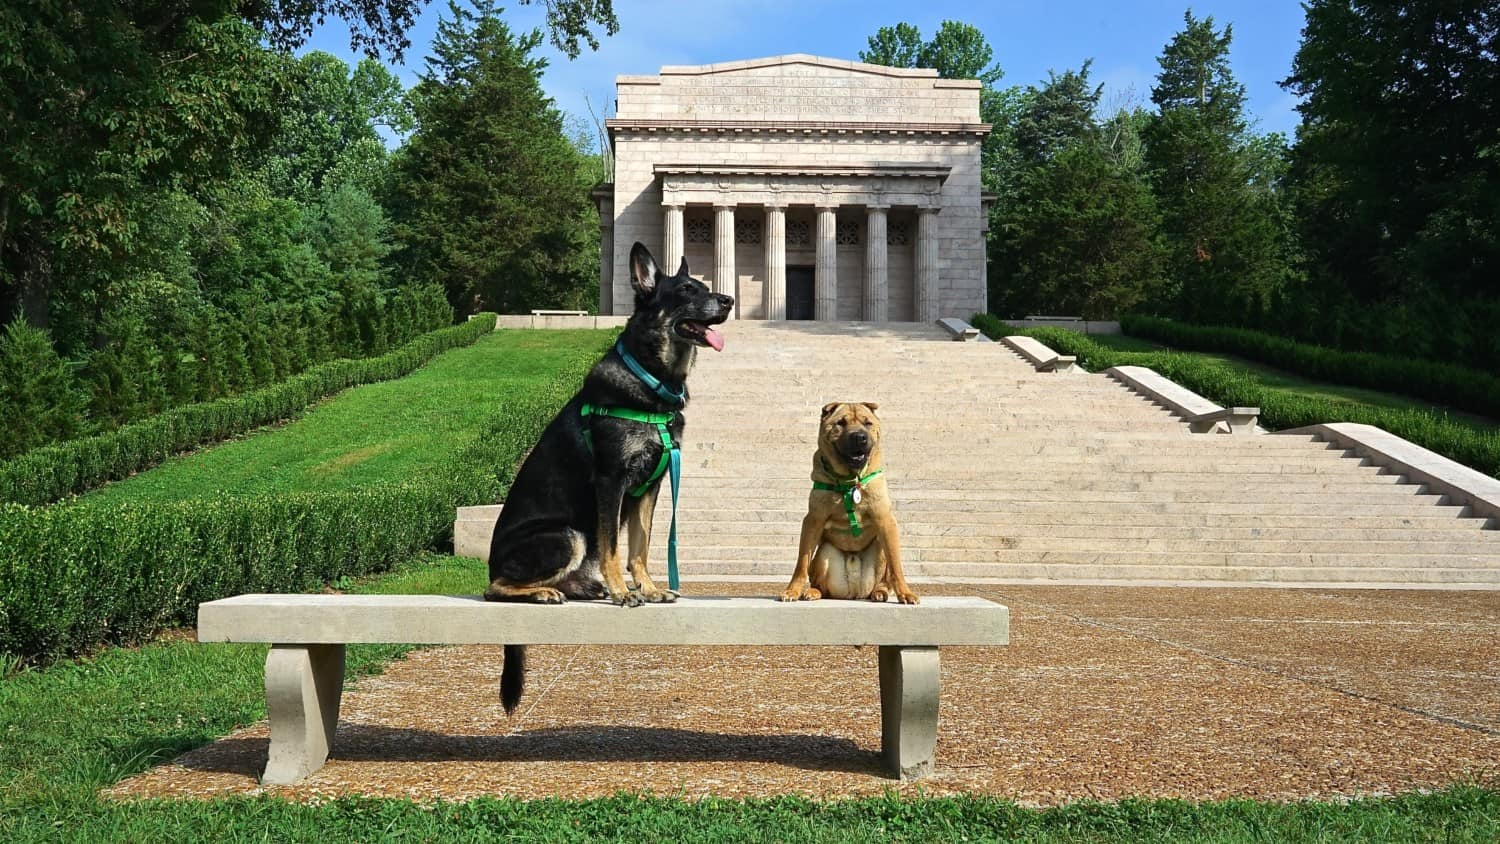 Kentucky's Top Pet Friendly Attraction: Lincoln Birthplace